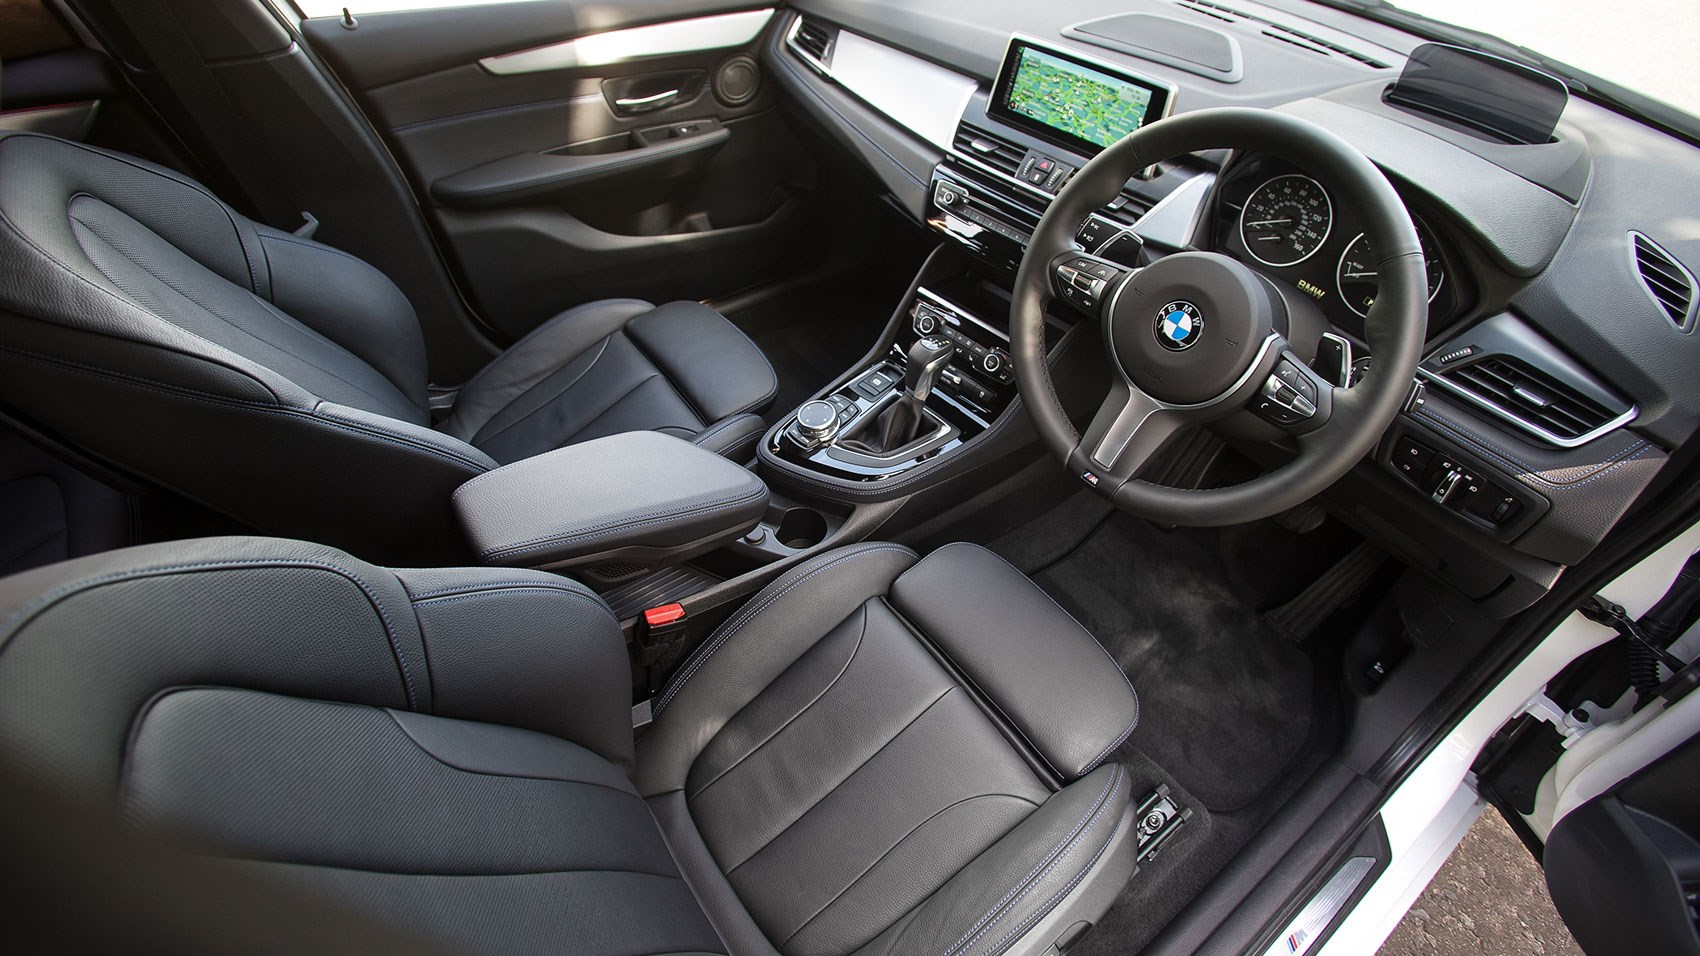 Bmw 220i gran tourer m sport package 2015 wallpapers and hd images - Photo Gallery